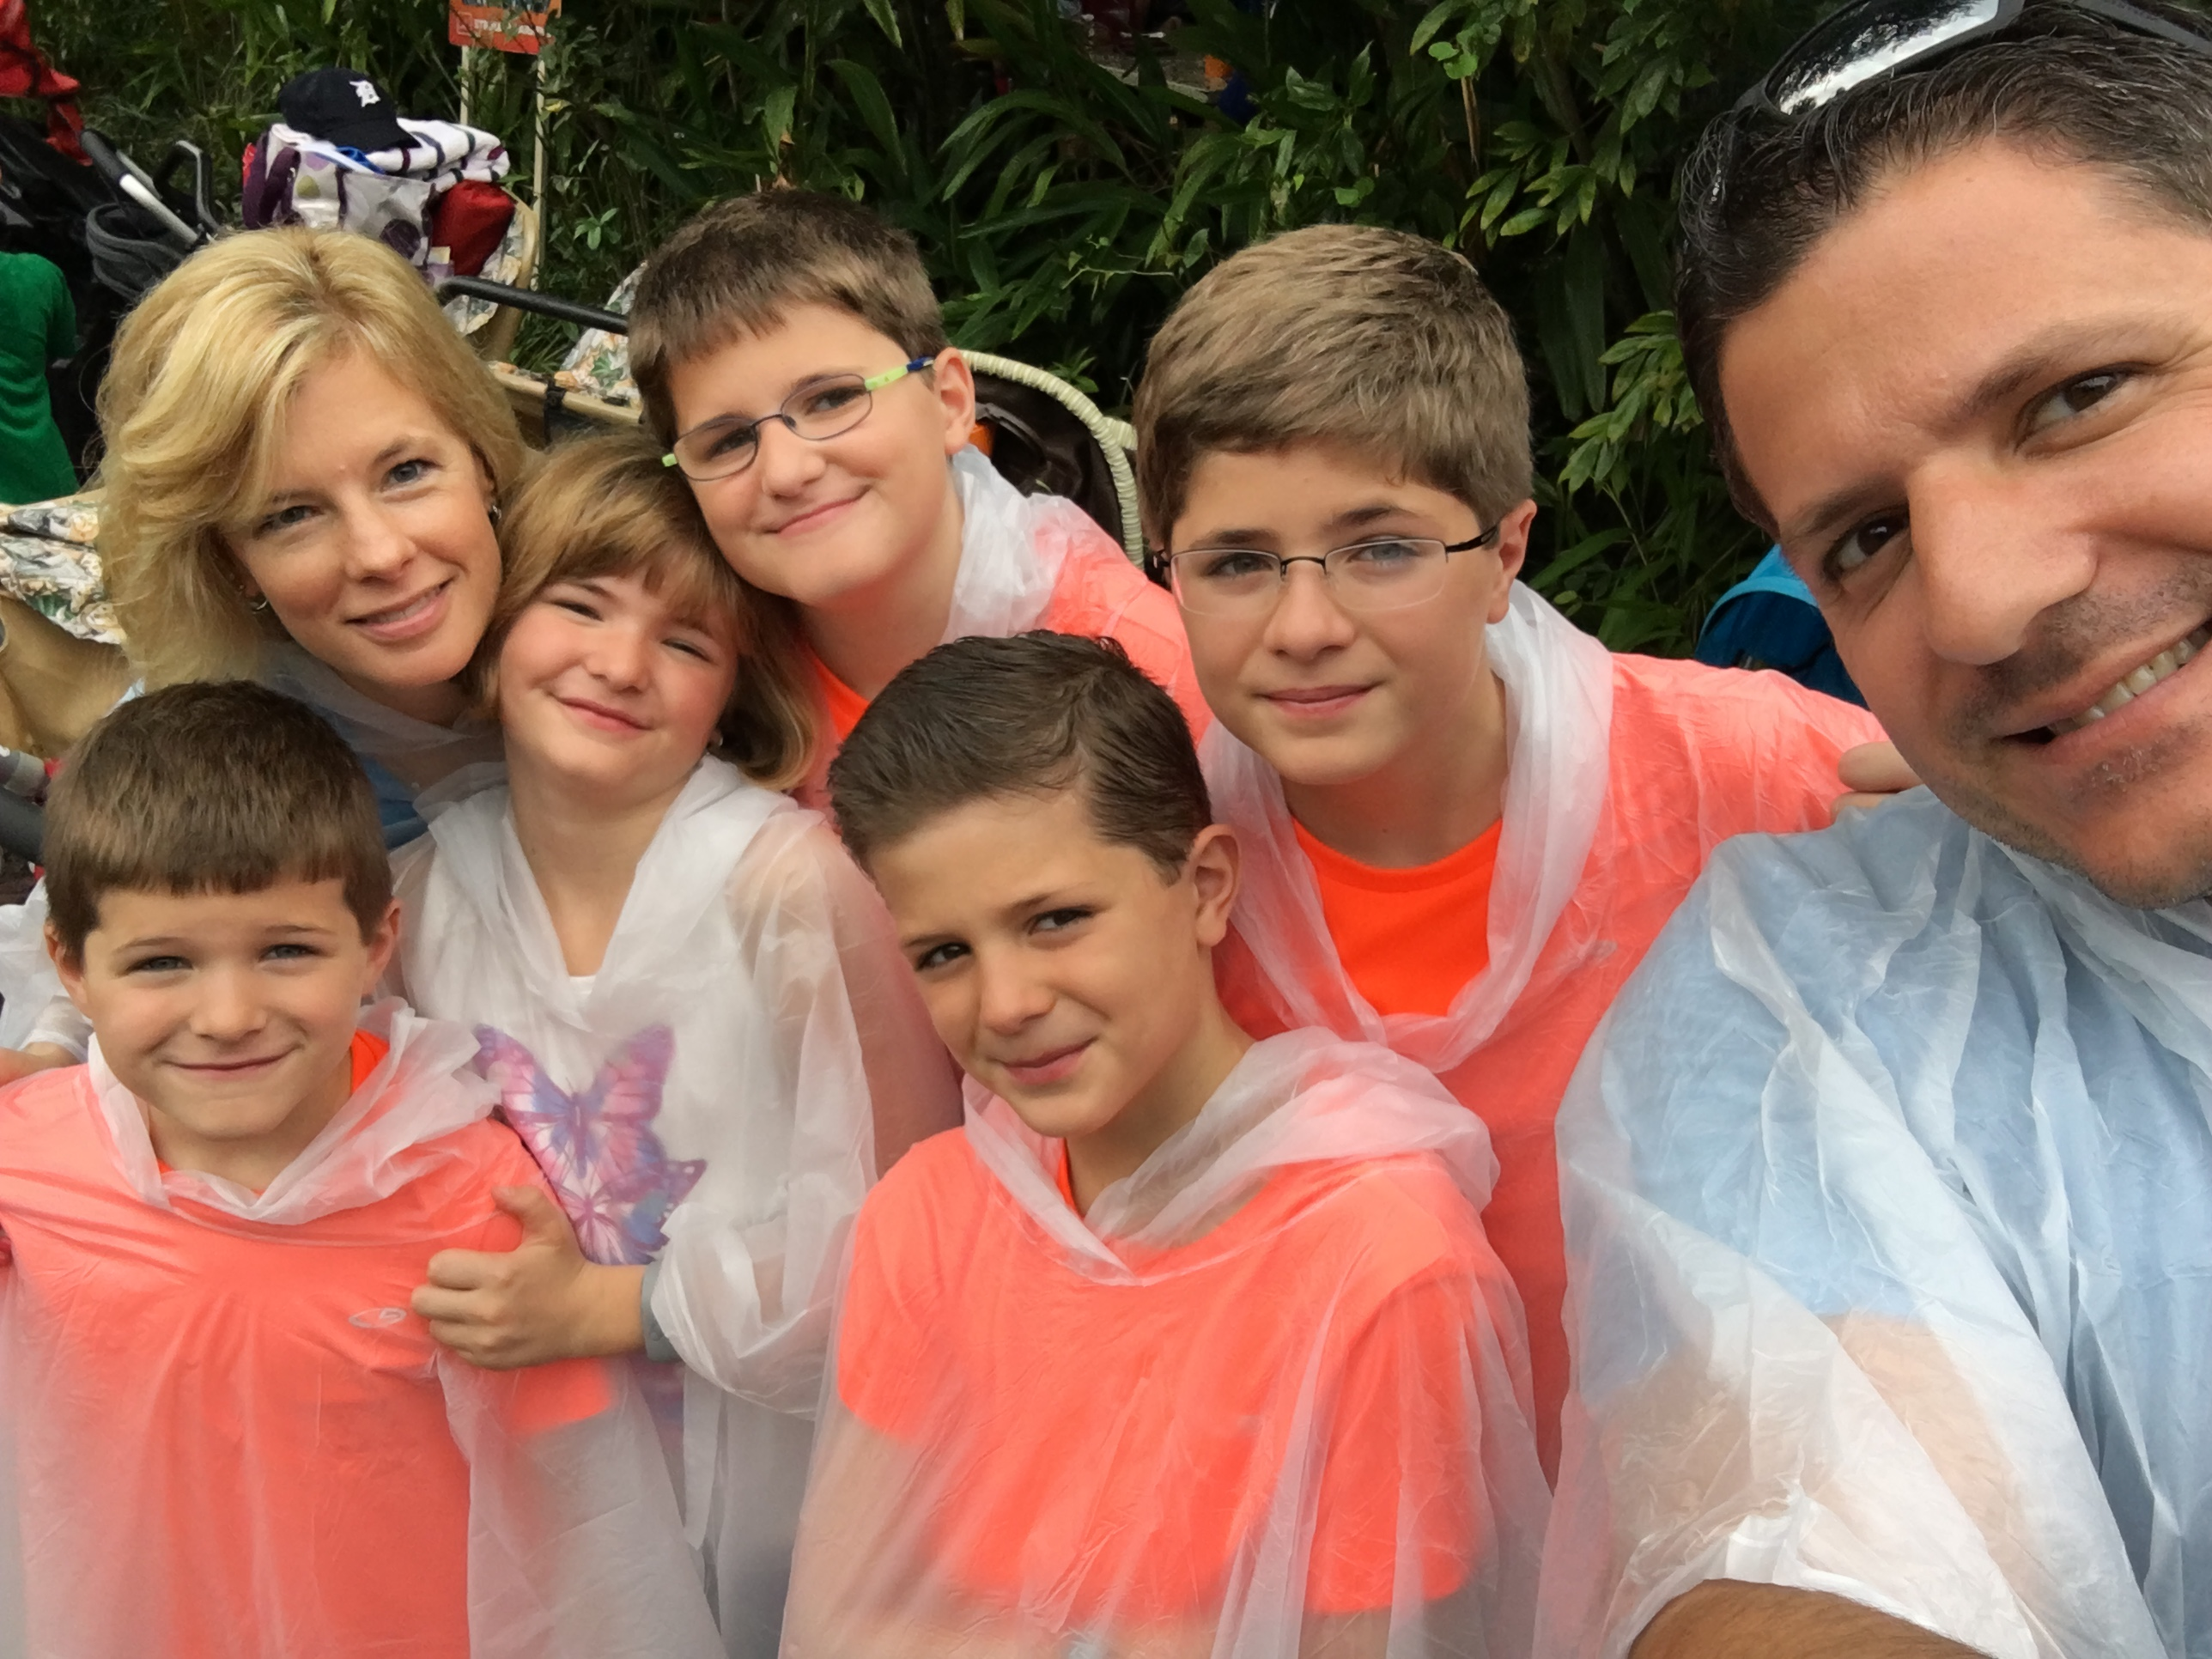 This is me and my family right before we went on a water ride. Thats why were wearing those weird bag things called ponchos.